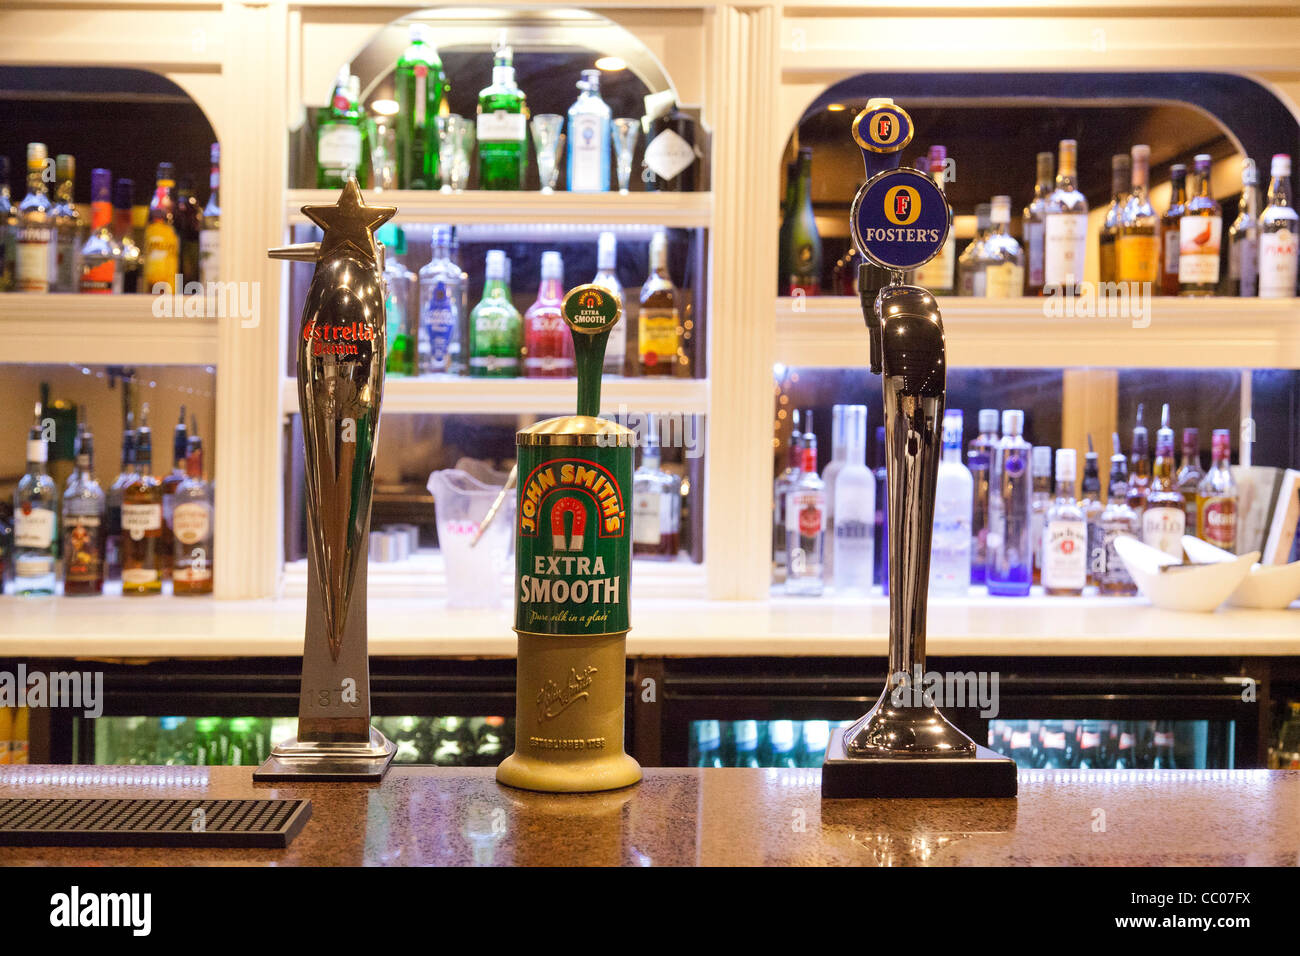 John Smith's Extra Smooth beer pump in pub in UK - Stock Image